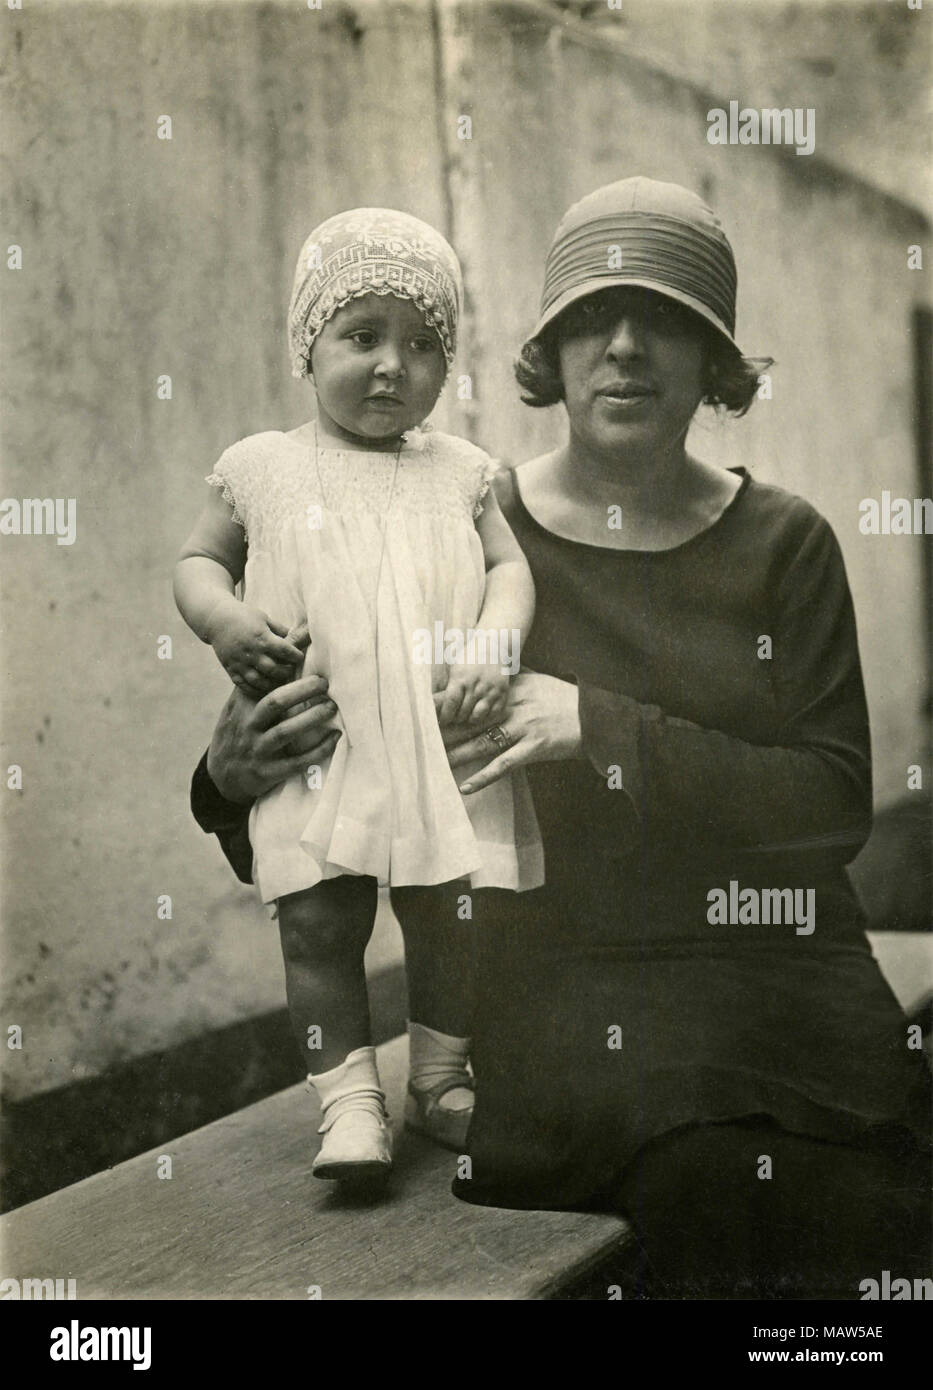 Mom and daughter with hats, 1910s - Stock Image